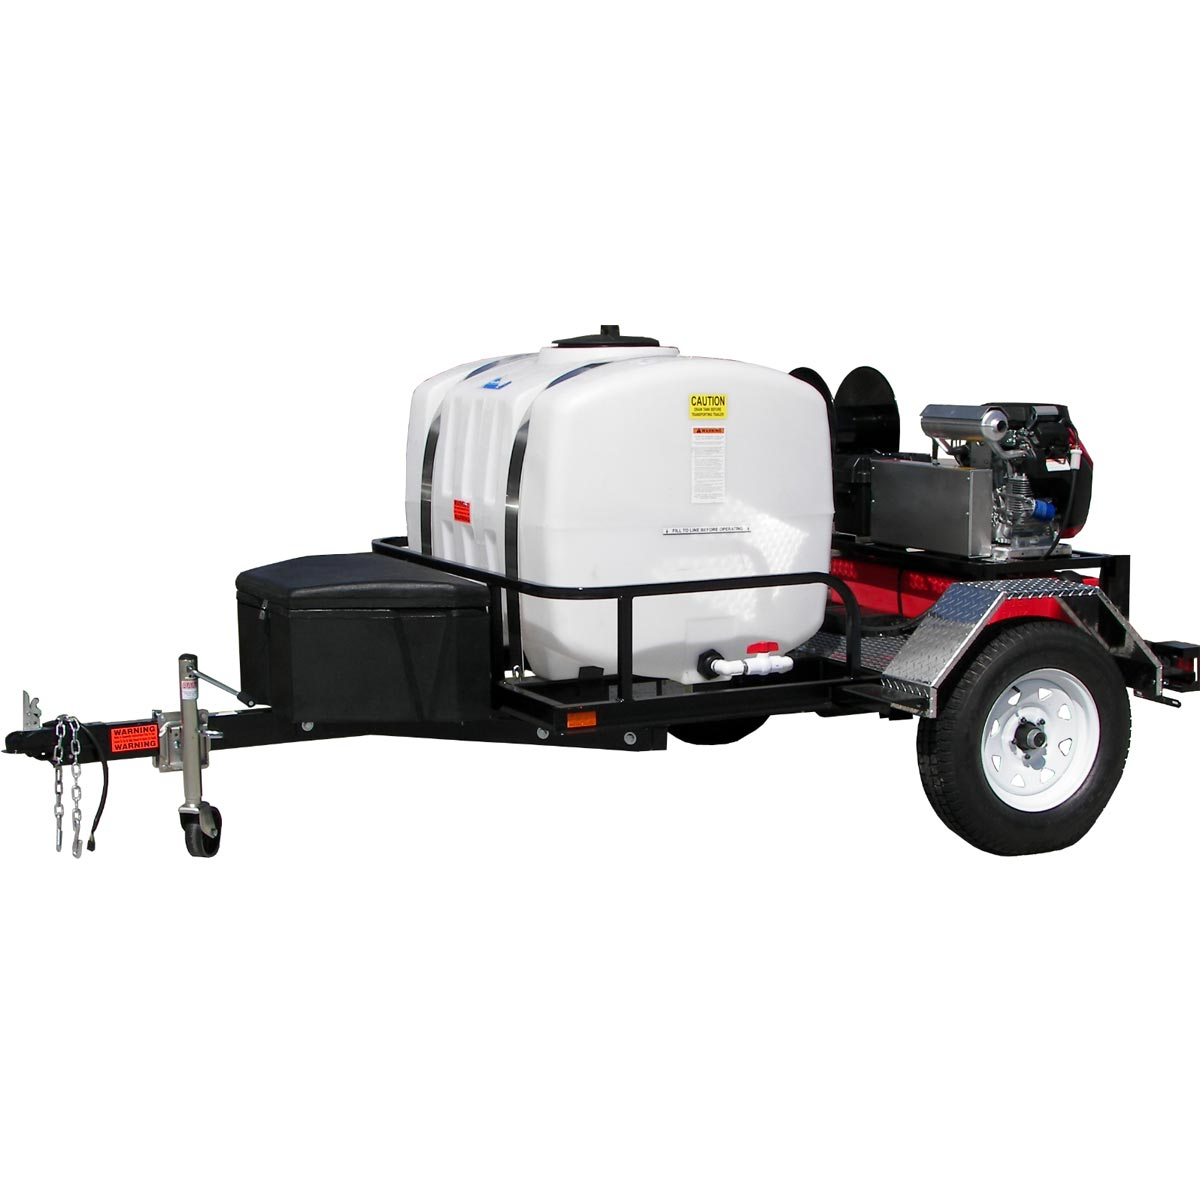 Clean Storm 20180712 Pressure Washer Tow-Pro Trailer Outfit 4000 PSI @ 5 GPM AR Pump HOT Included Shipping 18 hp Briggs Vanguard